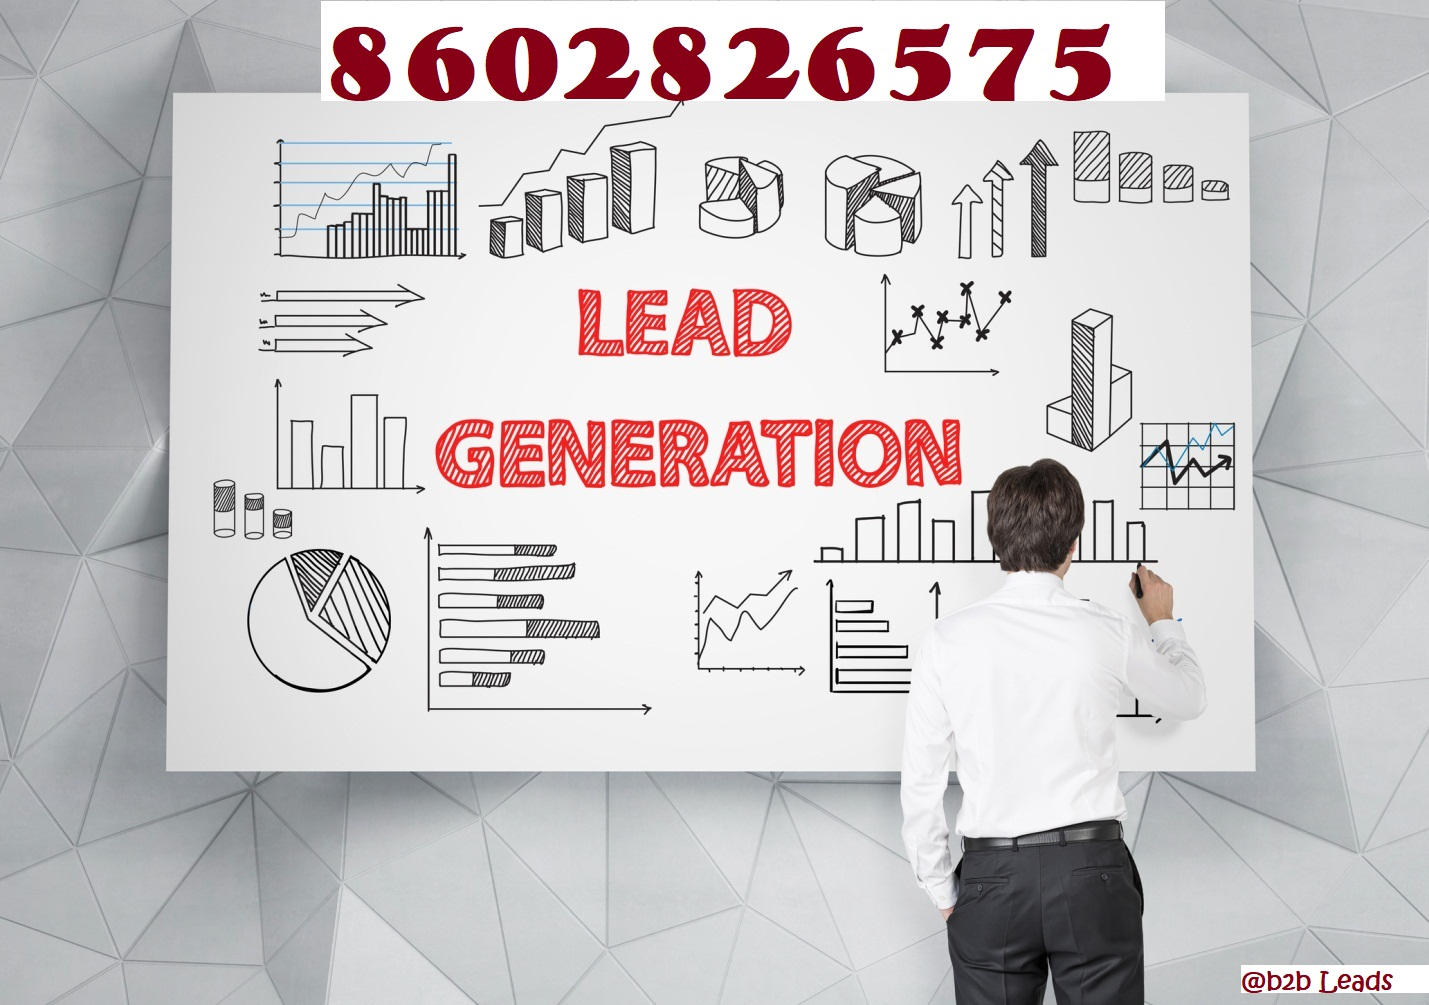 Lead Generation, Database Seller, SEO & Digital Marketing in Jabalpur Madhya Pradesh